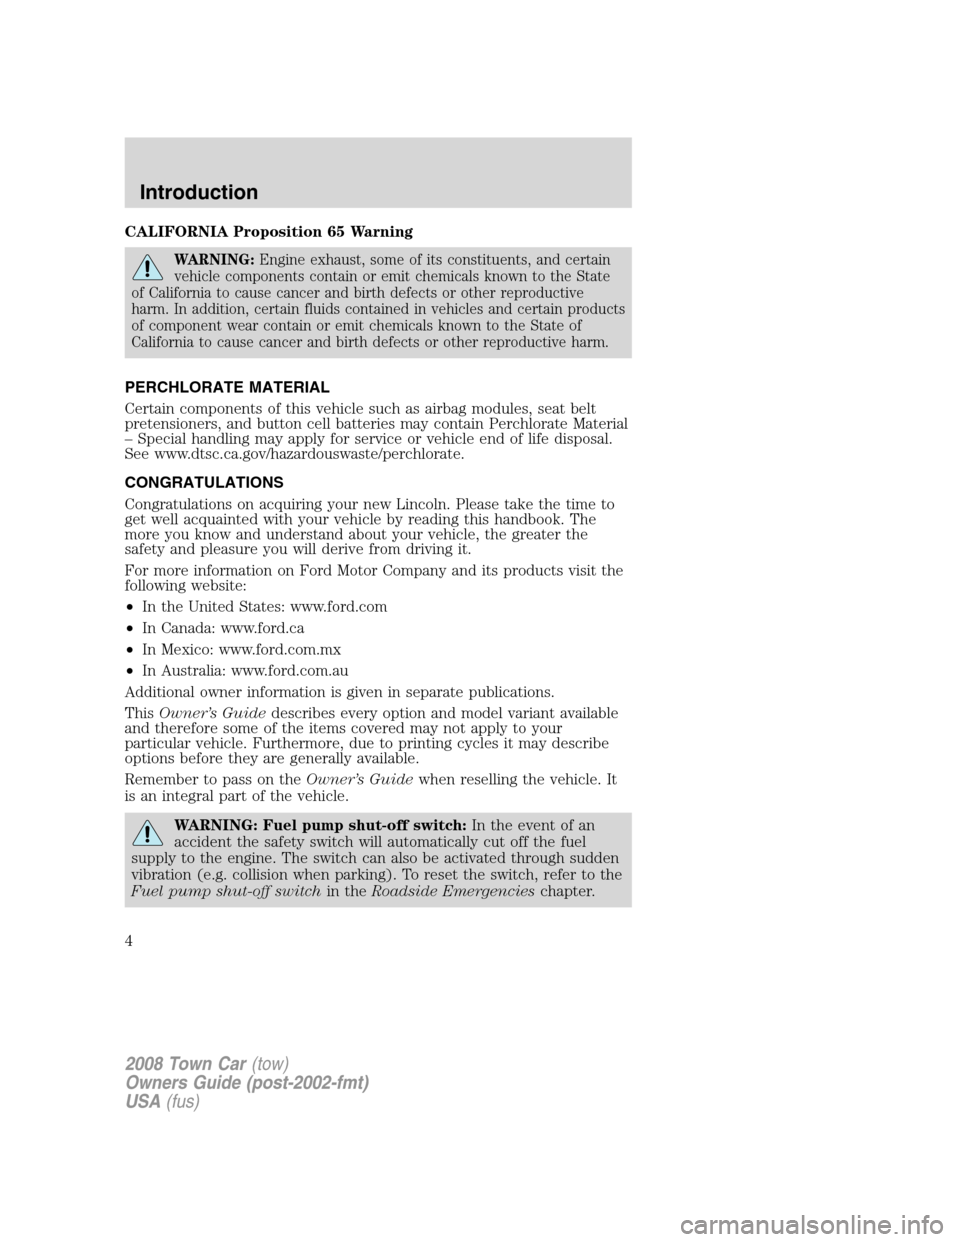 LINCOLN TOWN CAR 2008  Owners Manual, Page 4